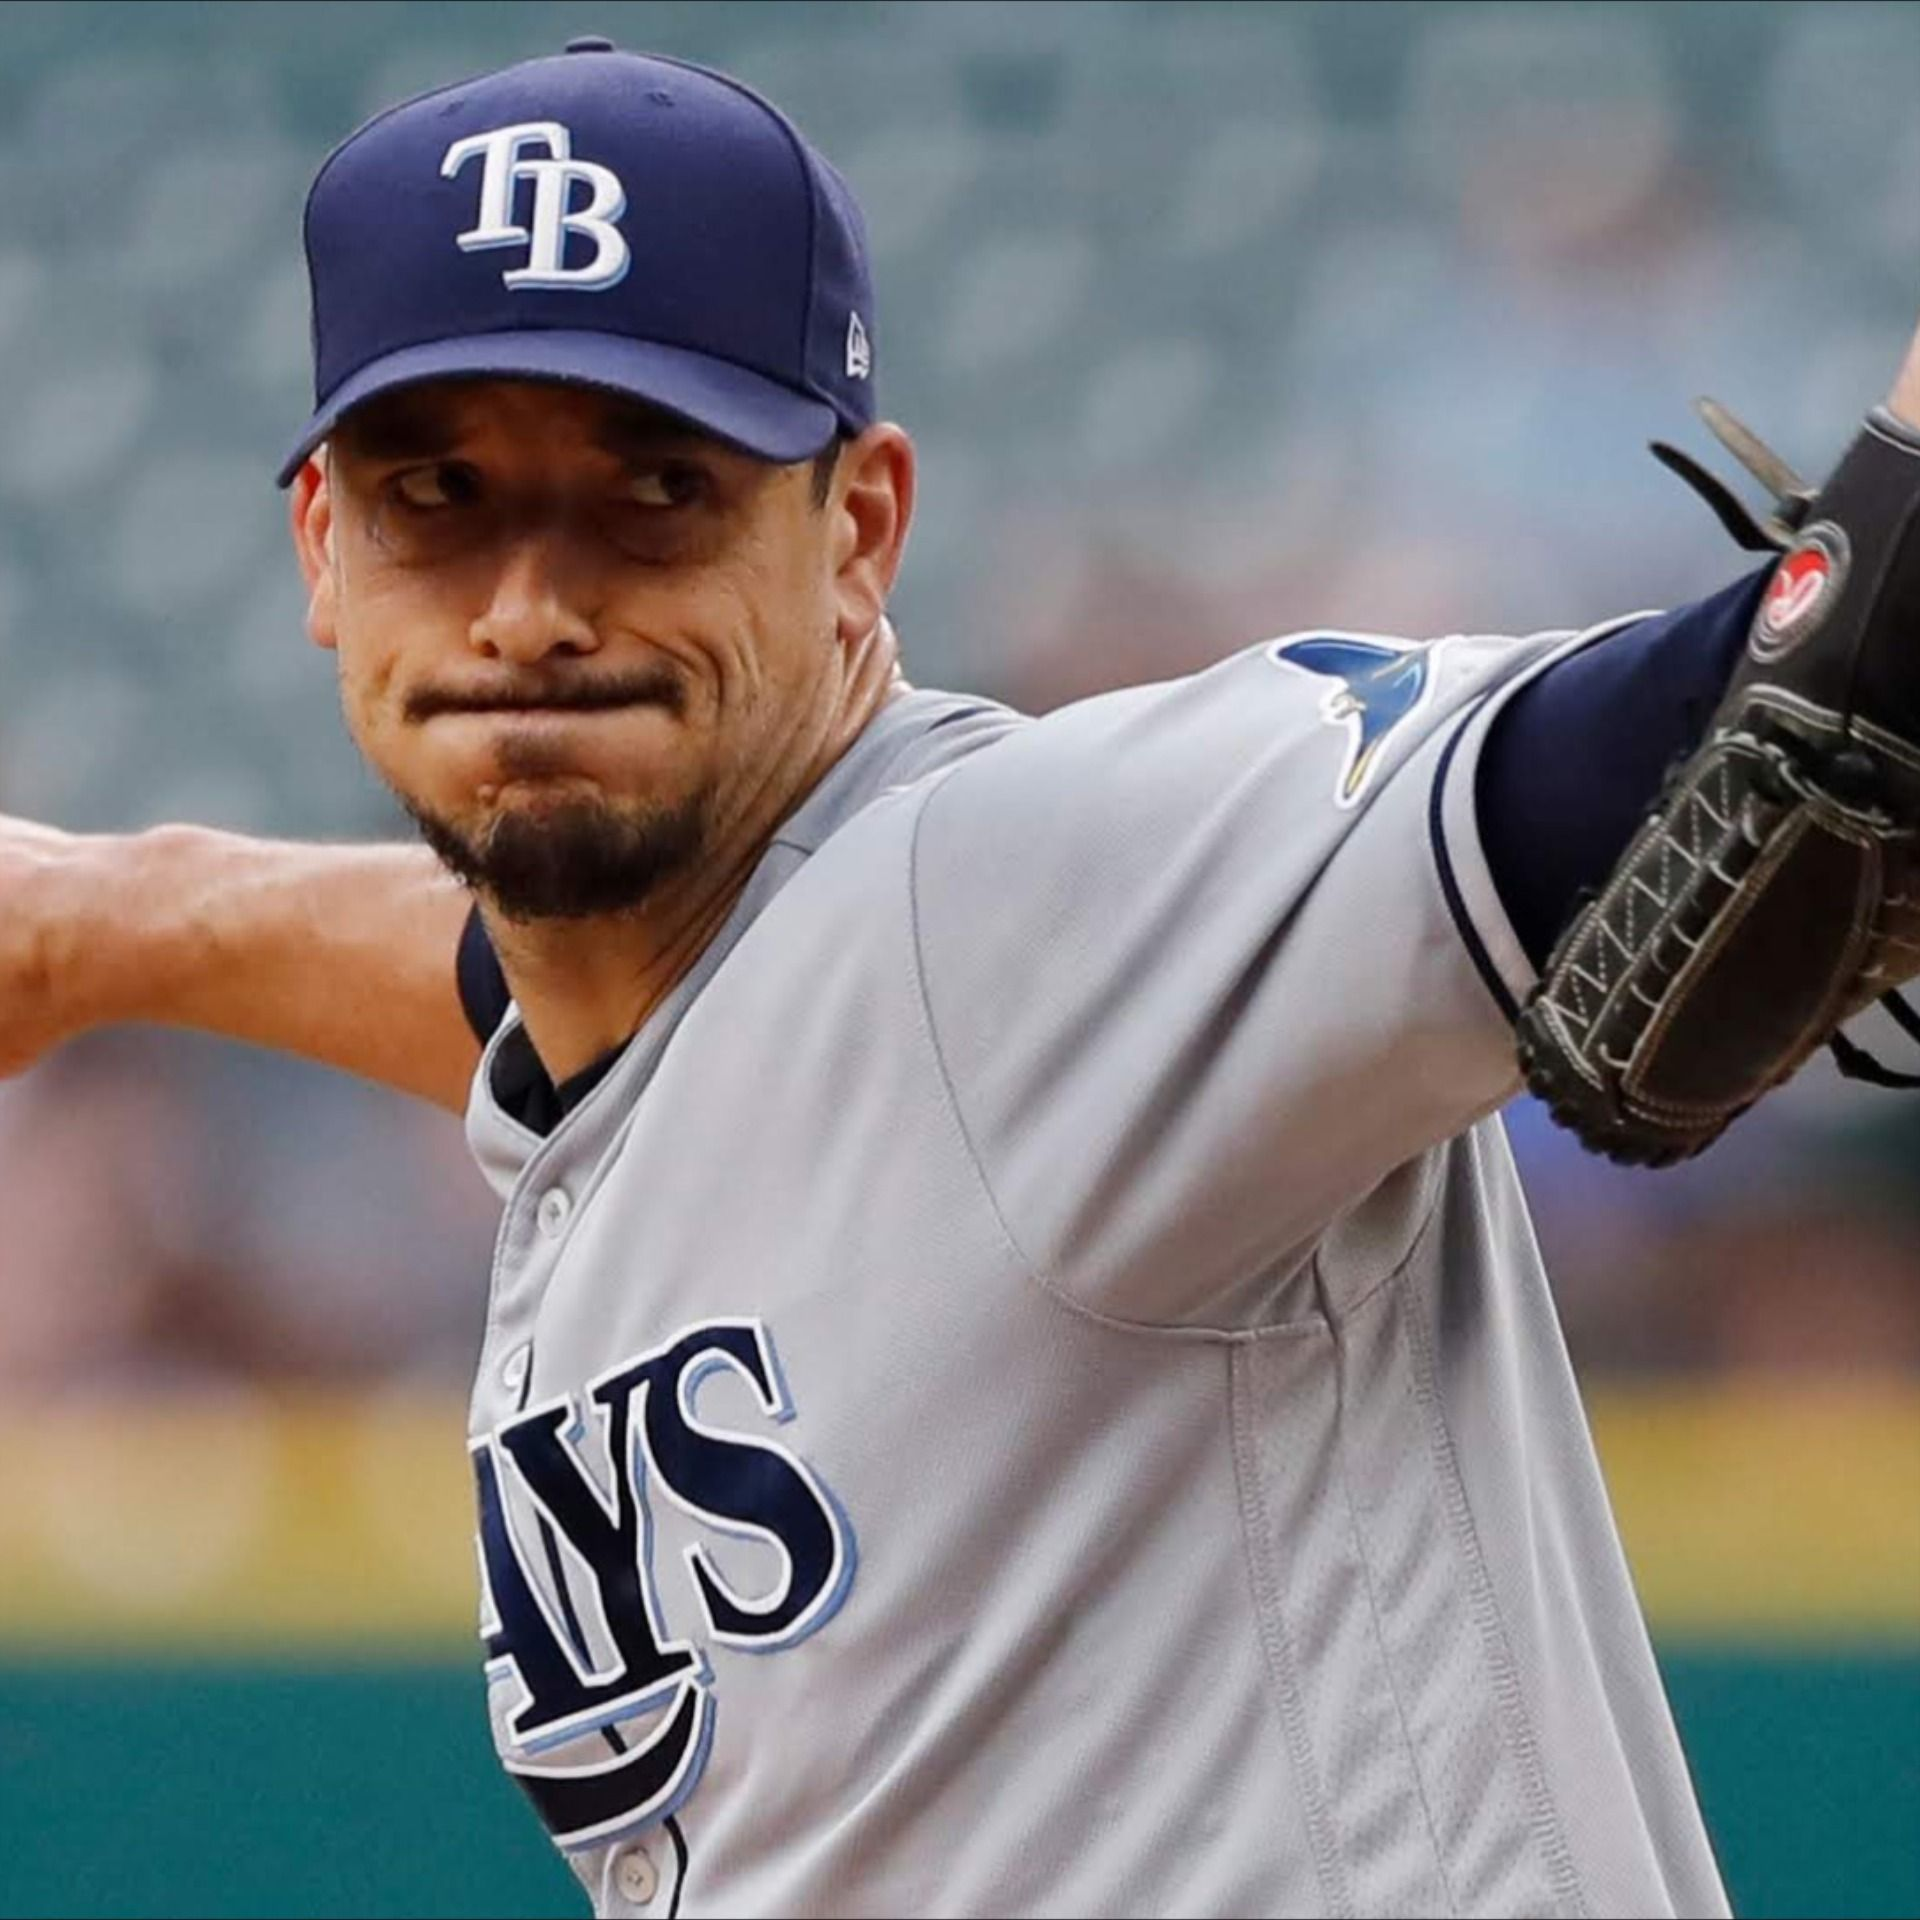 charlie morton pitcher tampa bay rays in 2020 tampa bay rays tampa bay baseball pitcher charlie morton pitcher tampa bay